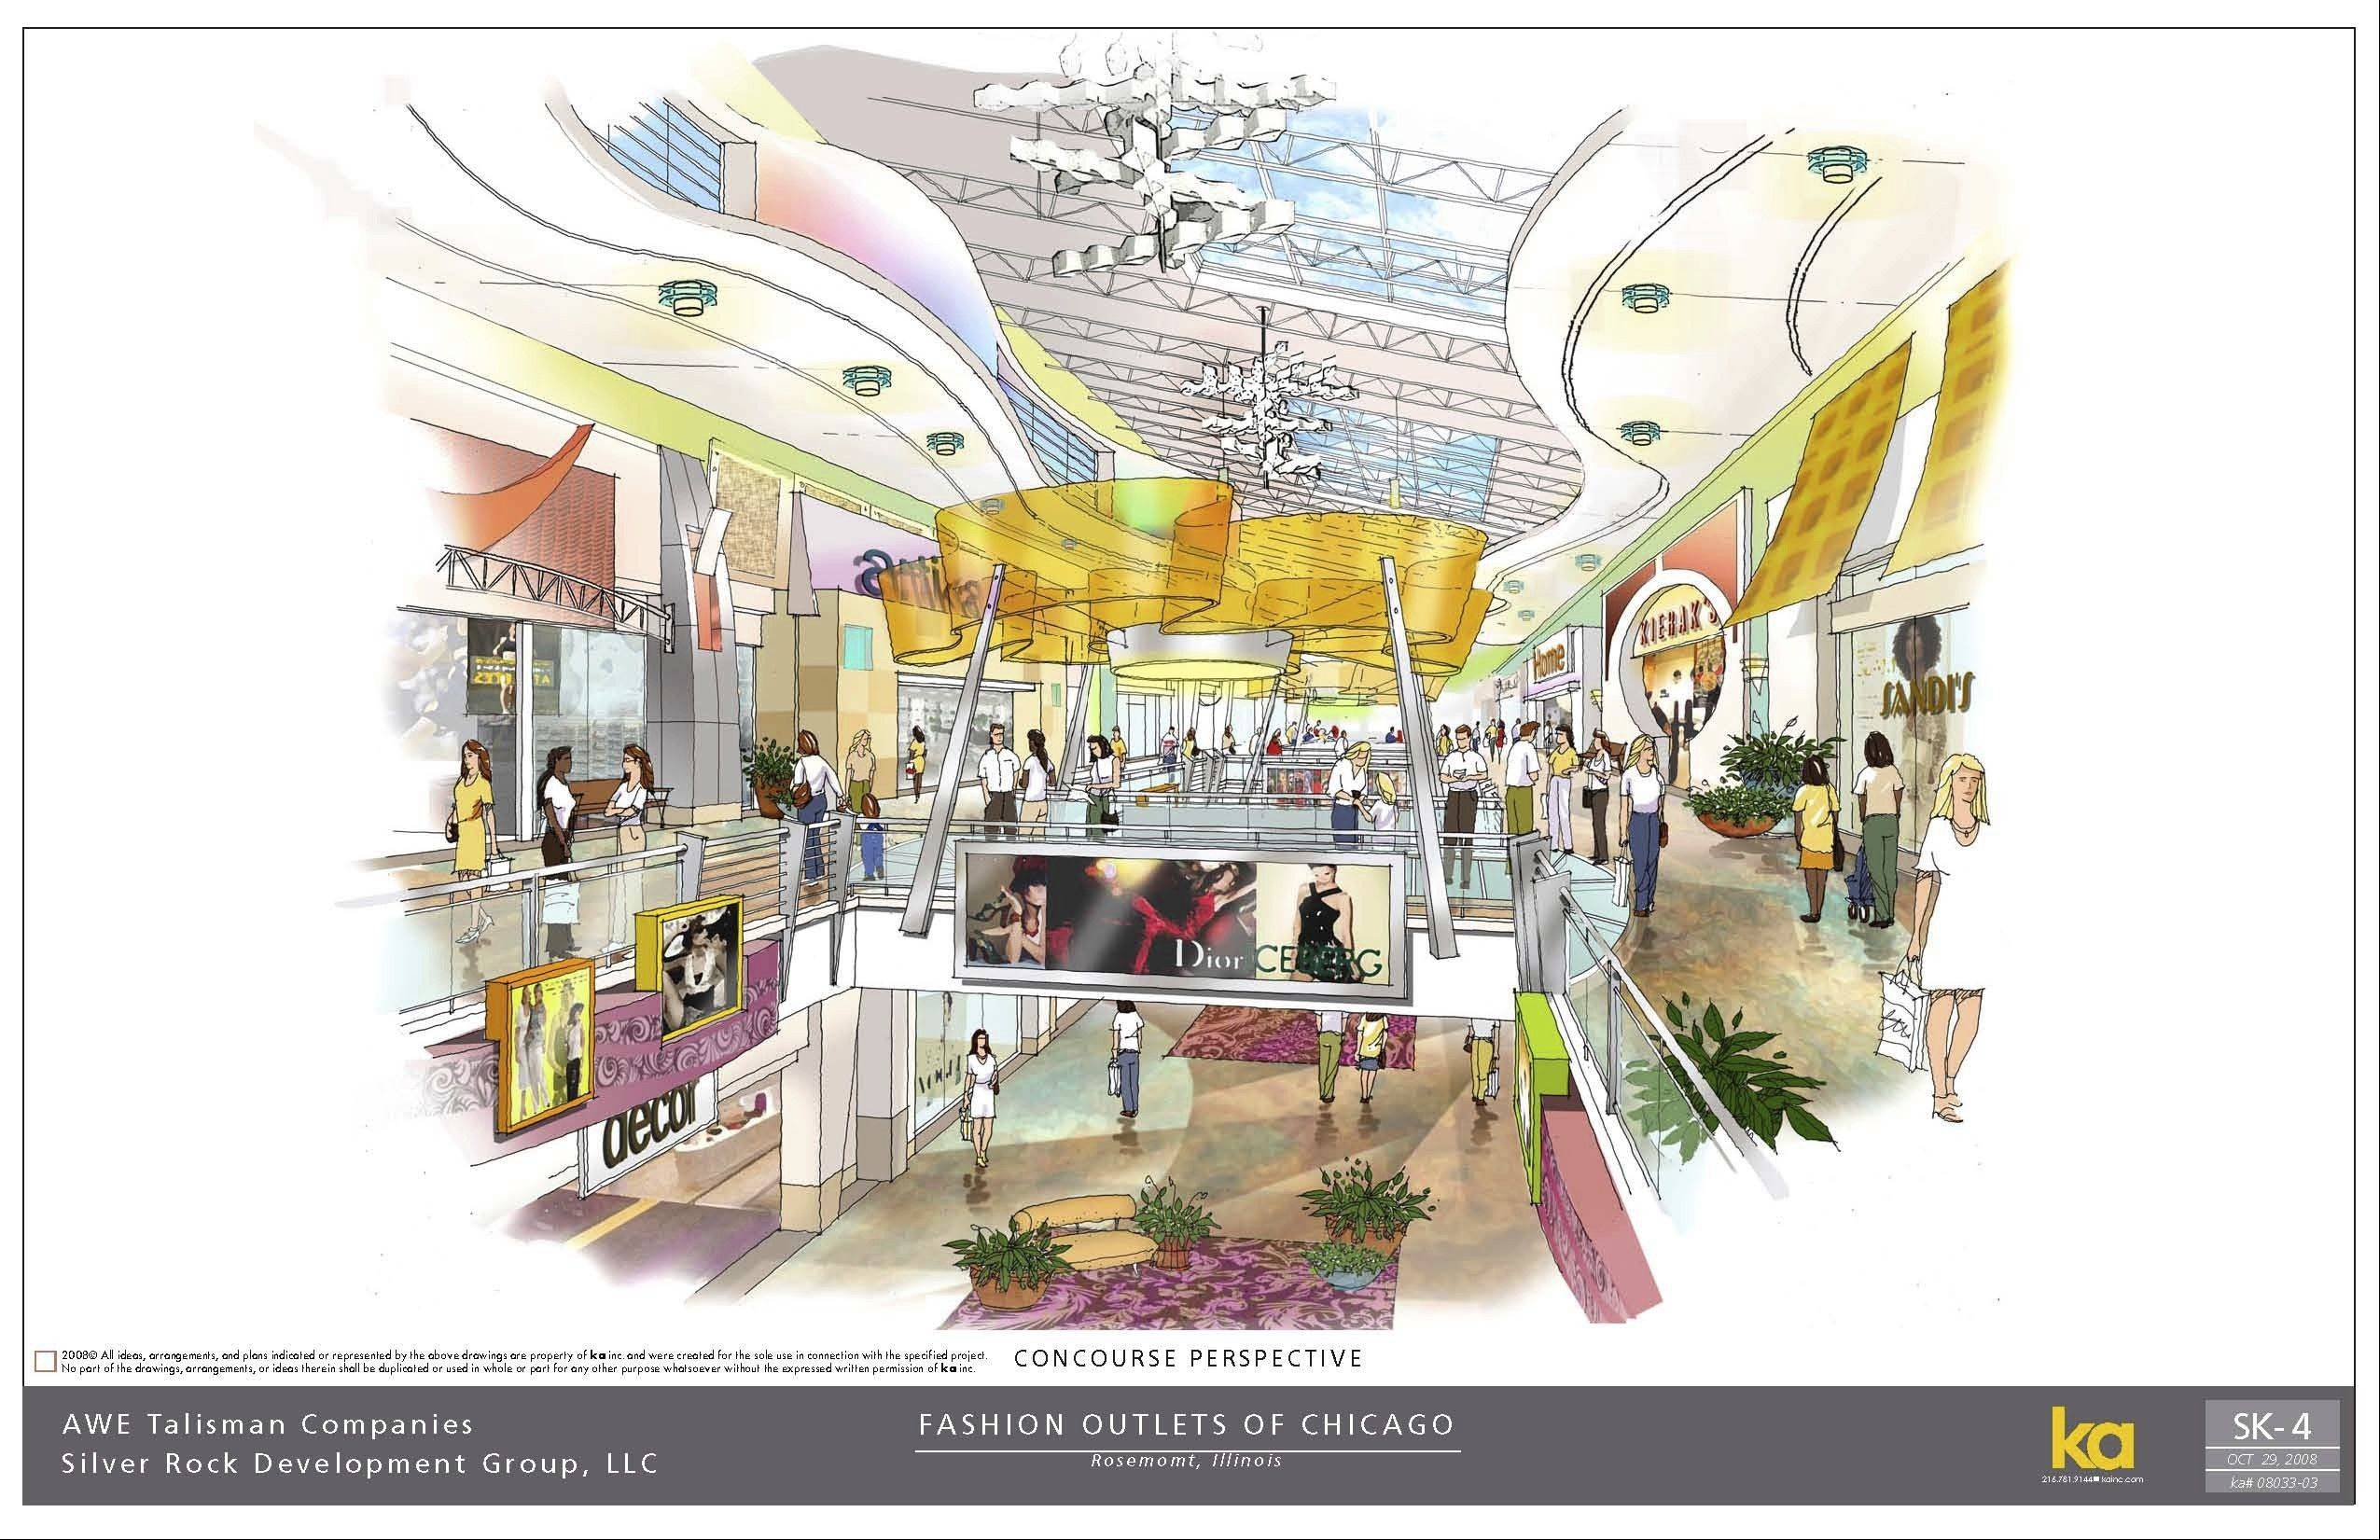 This is a representation of what the interior of the outlet mall could look like.